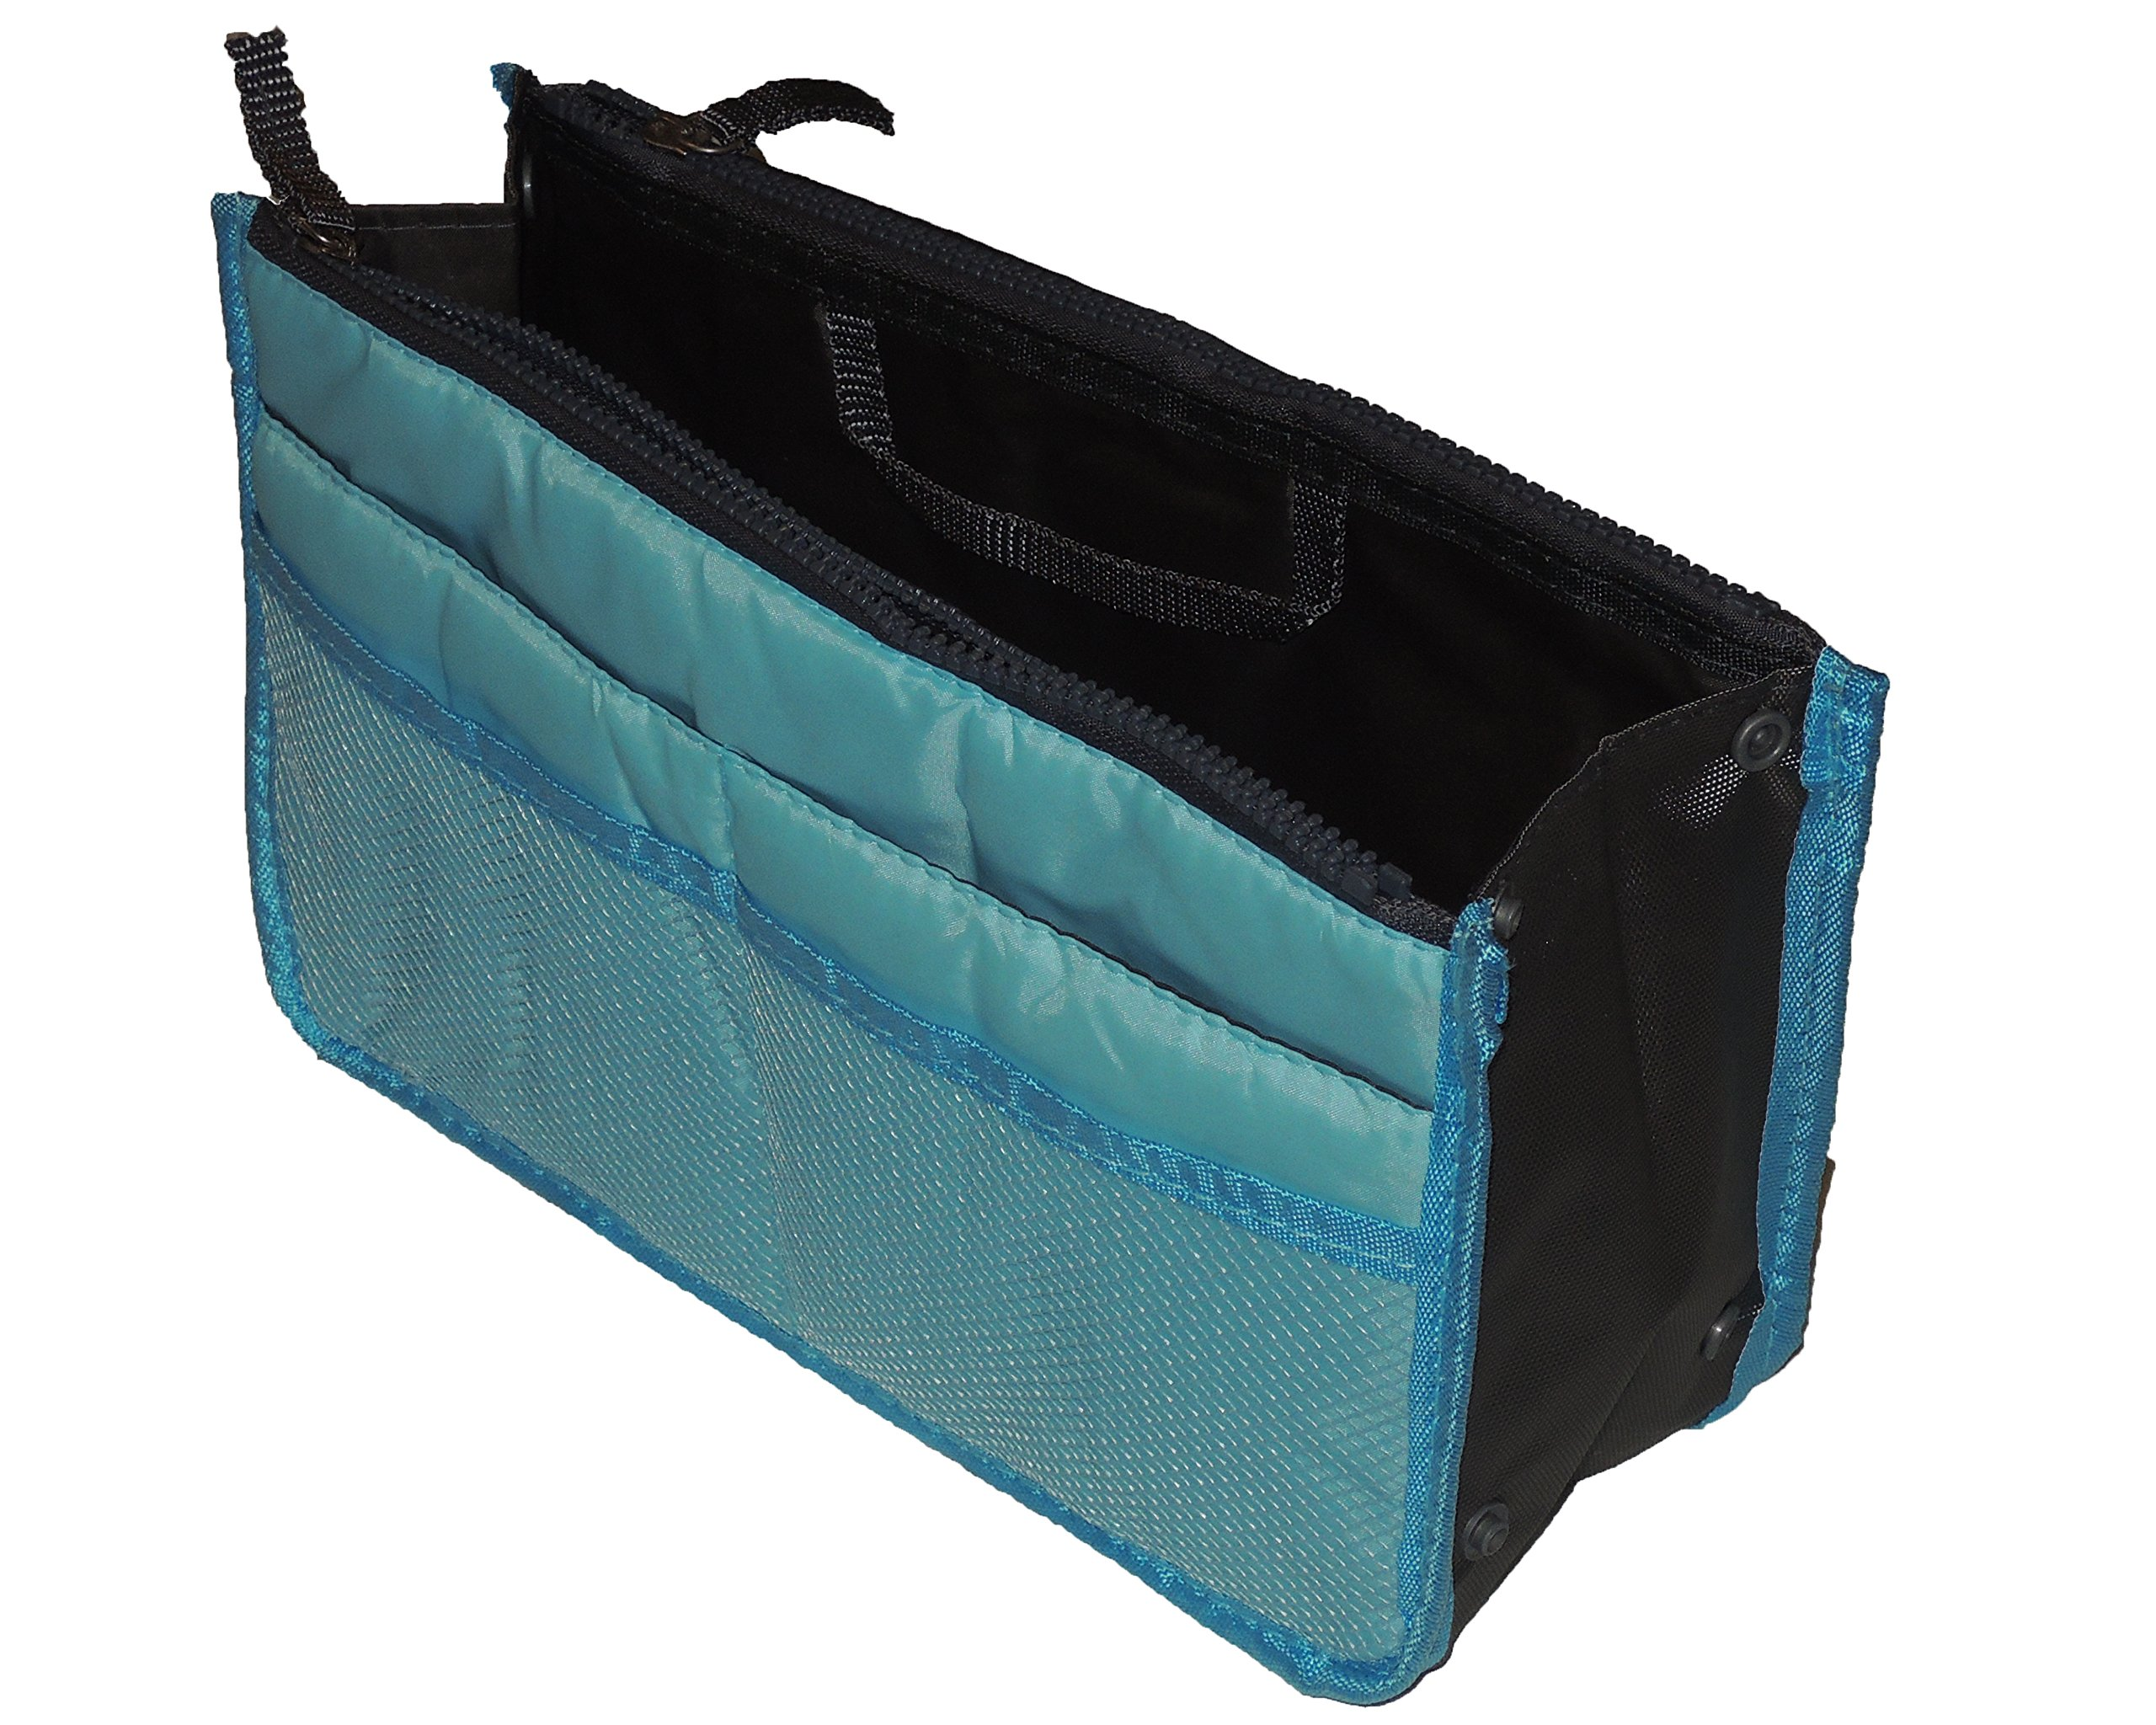 Gold-Confort Organizer 13 Pockets Insert Purse 11.6'' X 6.3'' Bag in Bag (Light Blue)